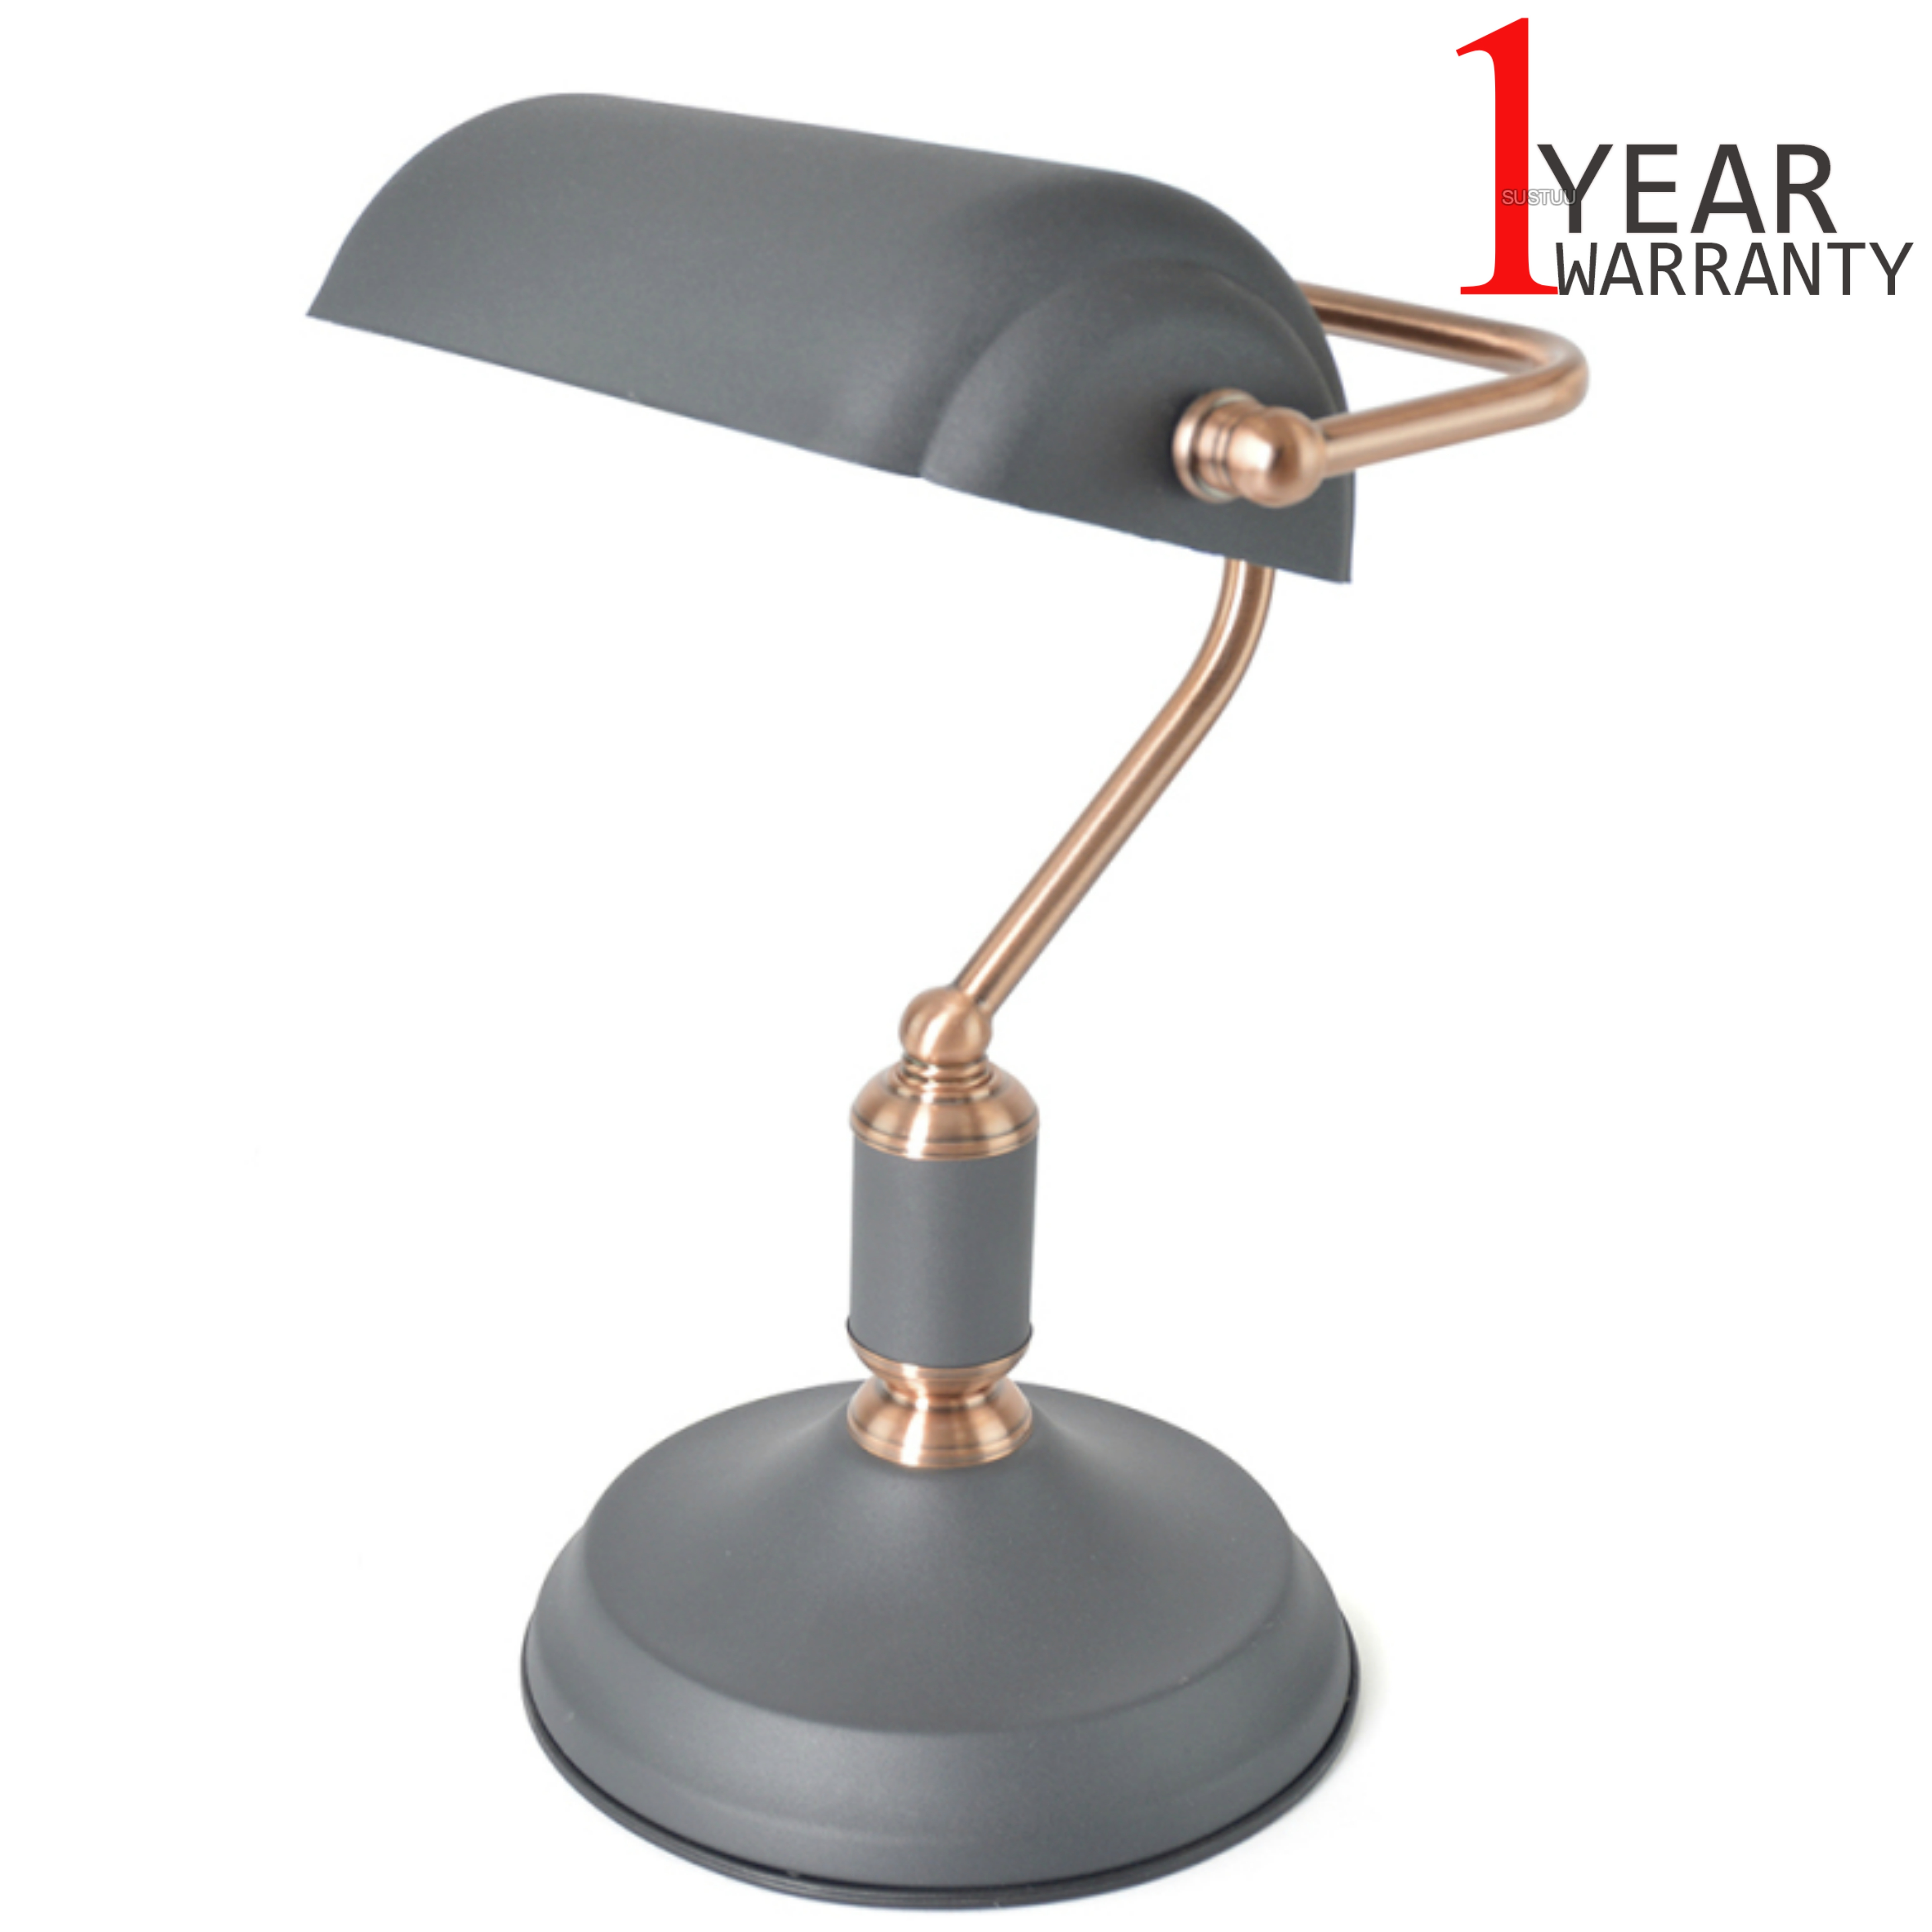 Lloytron 35w Bankers Study Lamp | In Line On/Off Switch | Black-Copper | L1161BC | NEW